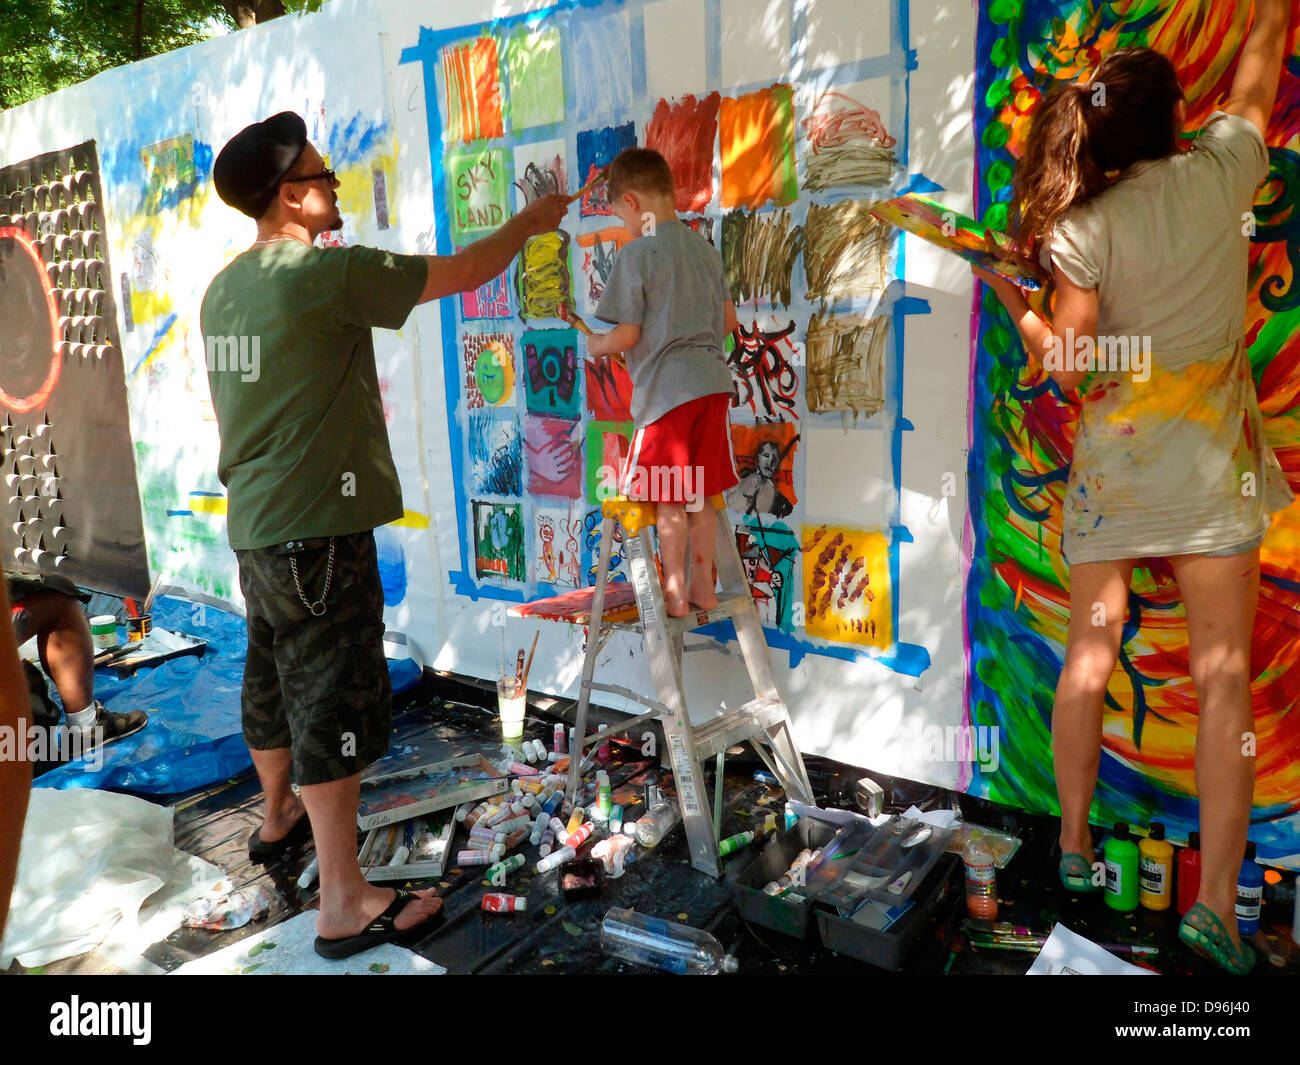 Artists work on their canvas' at the Howl! Festival's 'Art Around the Park' around Tompkins Square - Stock Image